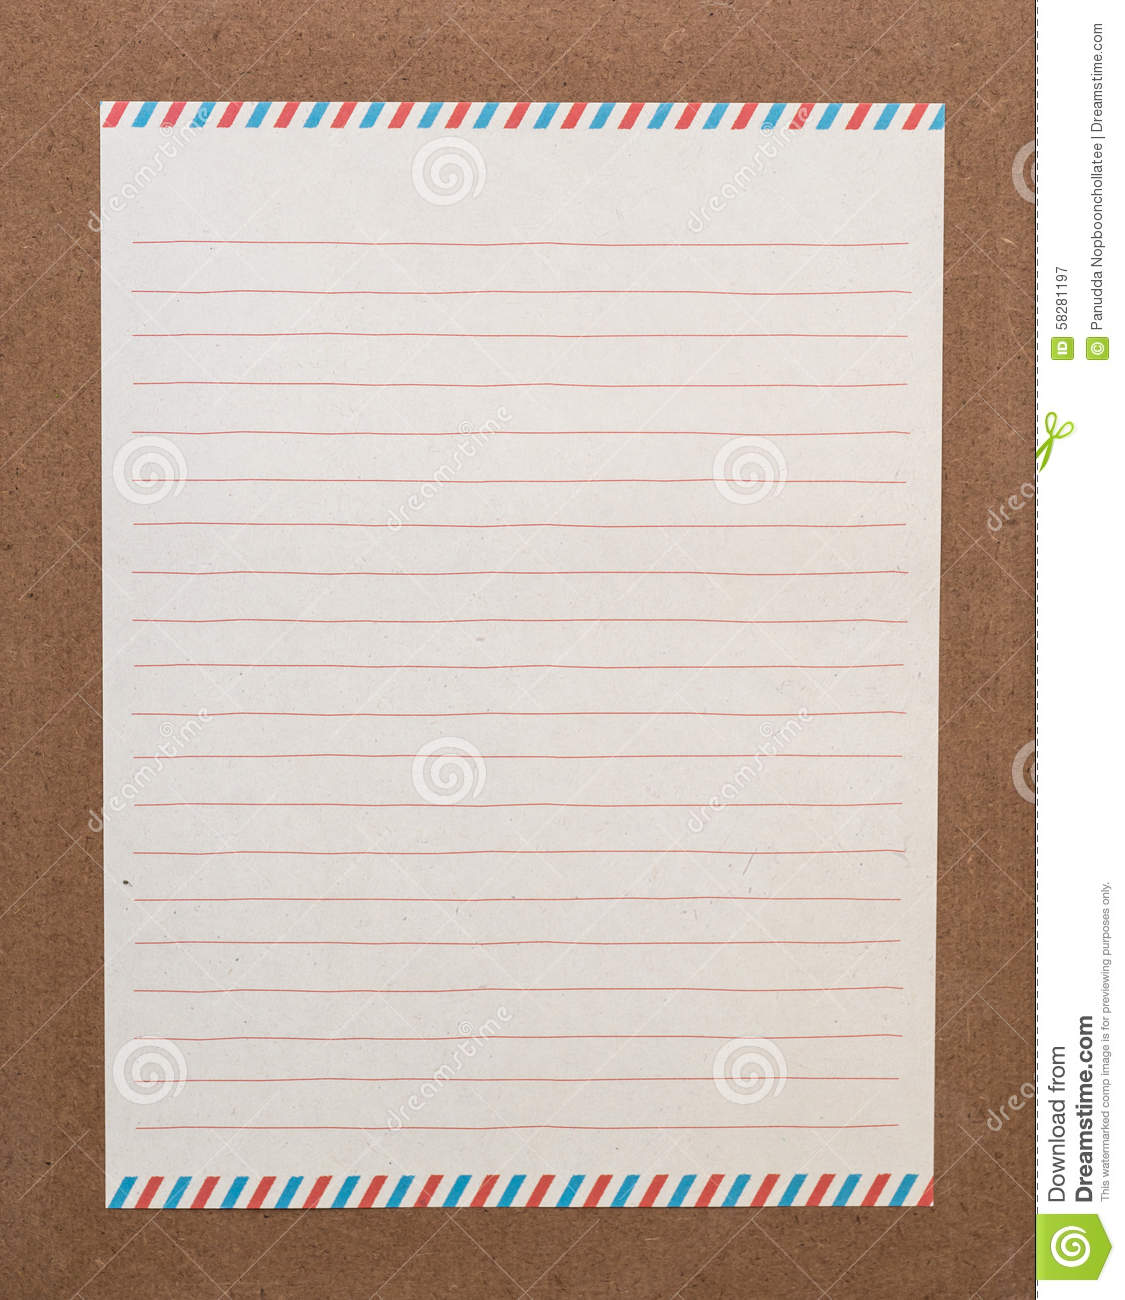 Letter Paper Stock Image